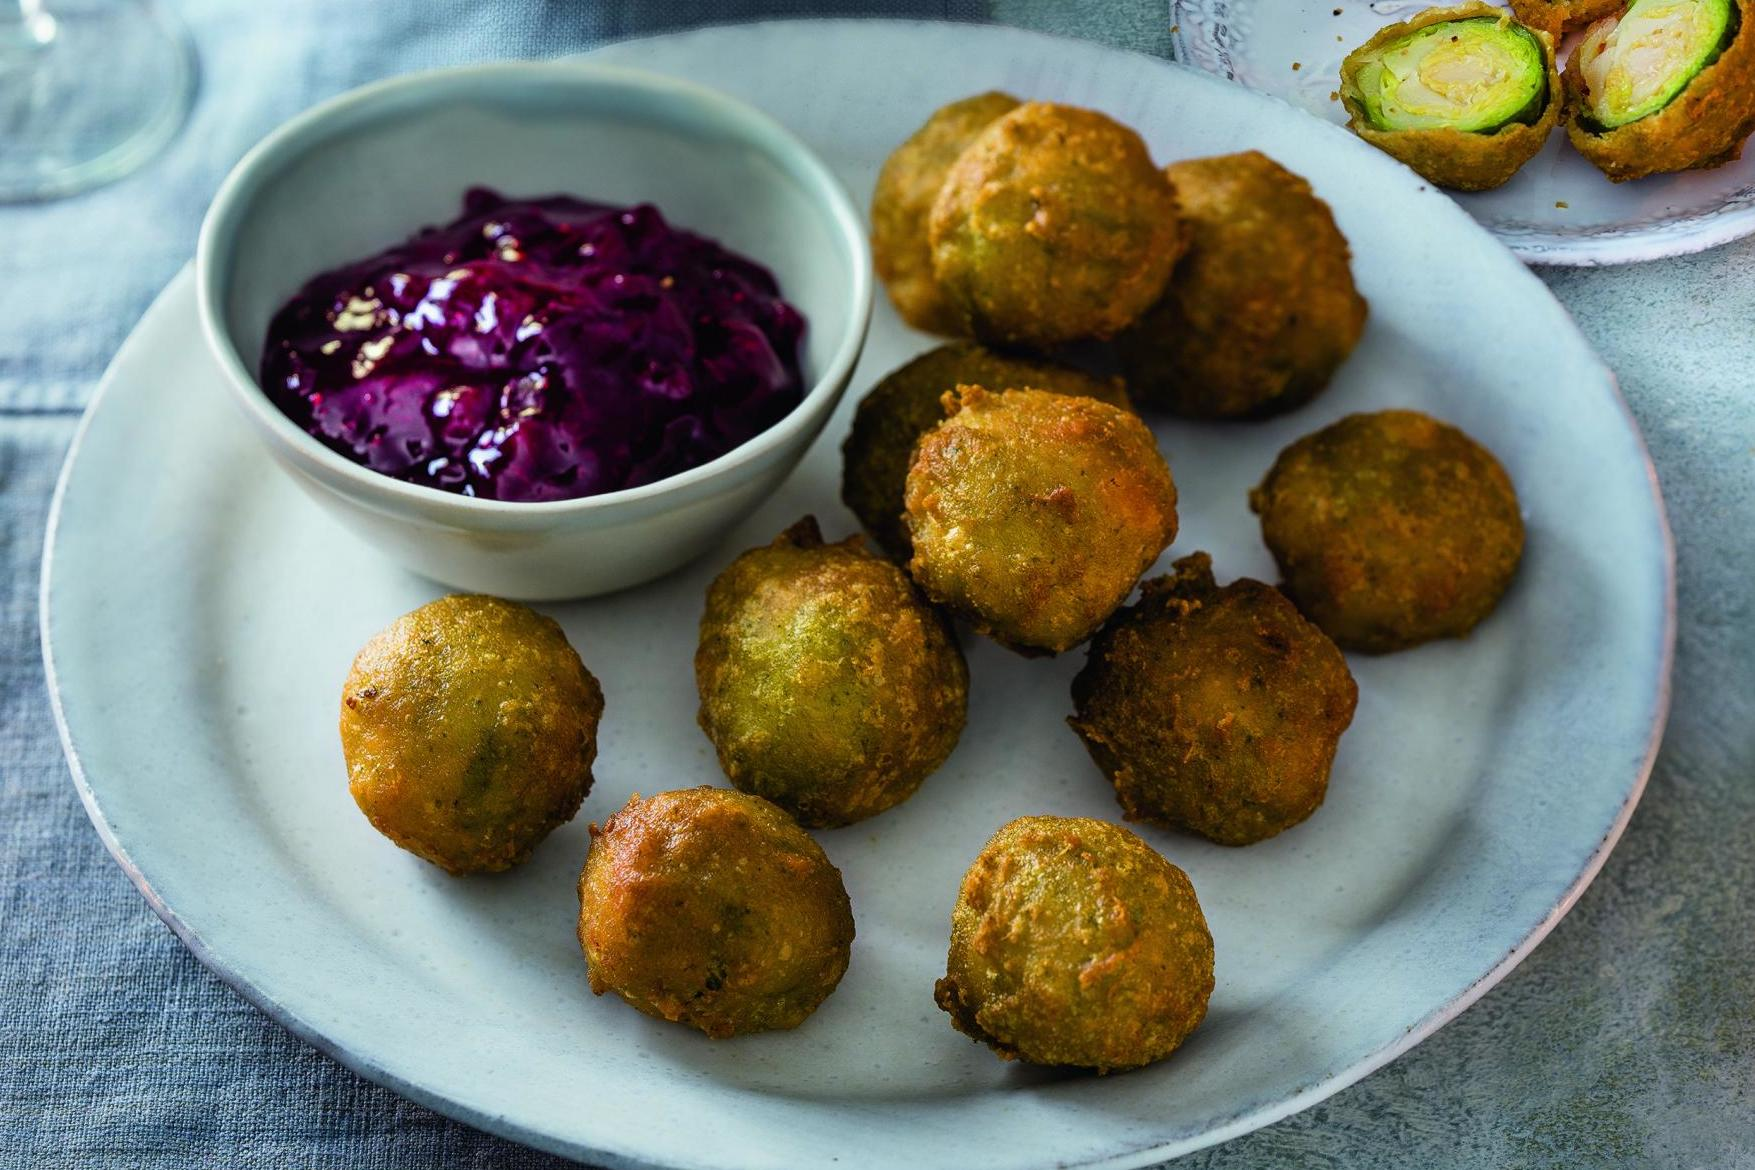 Tesco launch vegan battered Brussels sprouts for Christmas 1